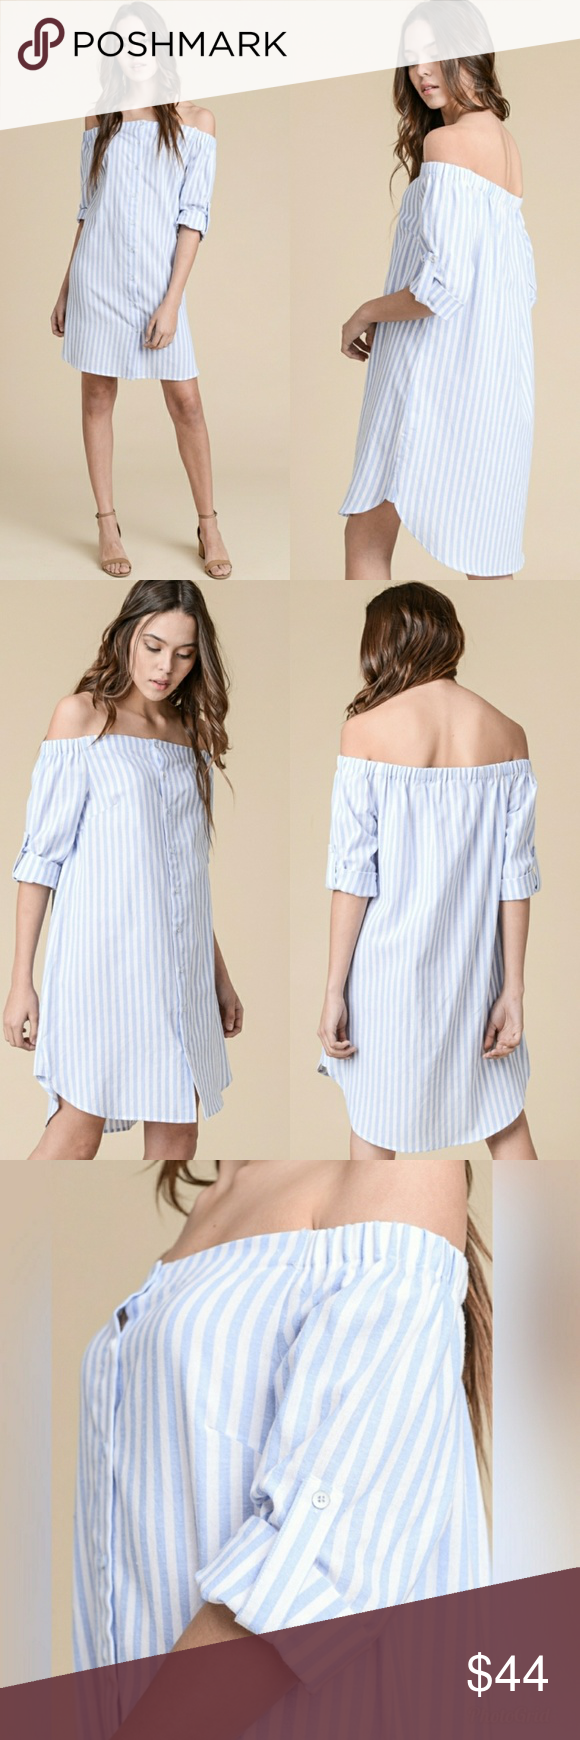 8ae214d029628 Off the Shoulder Dress Blue and white striped dress. Off the shoulder